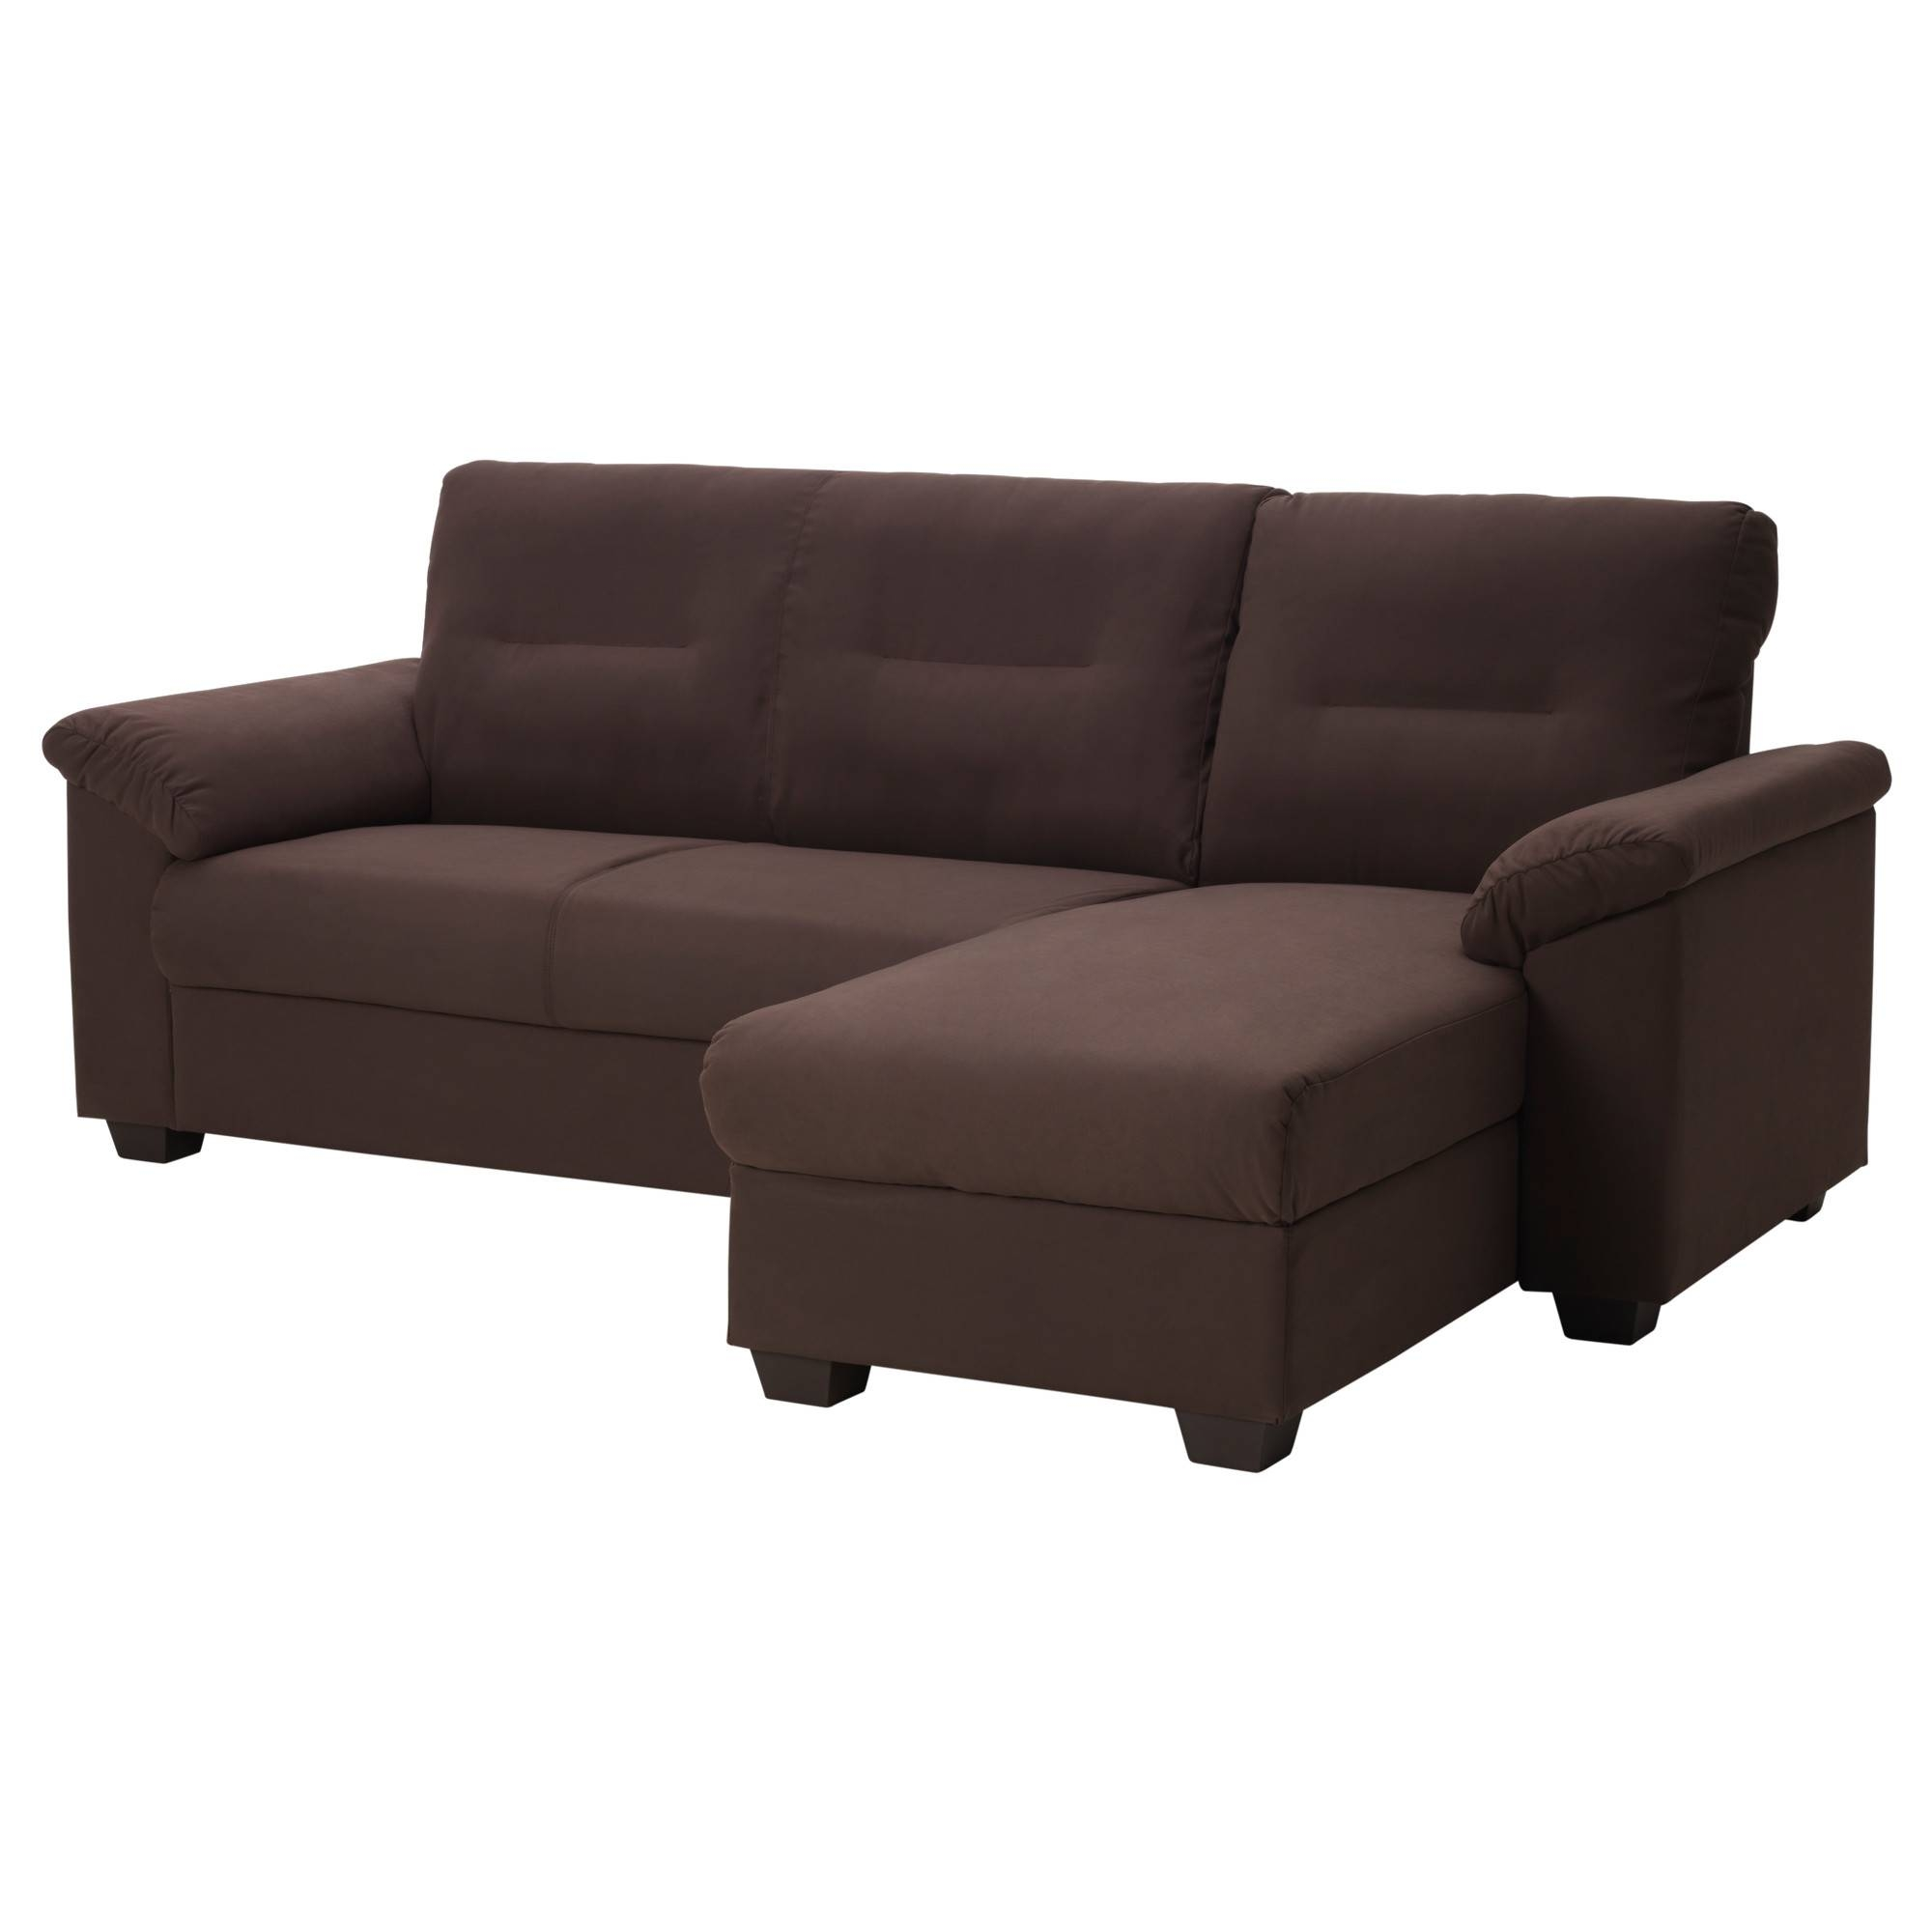 Fabric Sectional Sofas - Ikea with Single Chair Sofa Beds (Image 13 of 30)